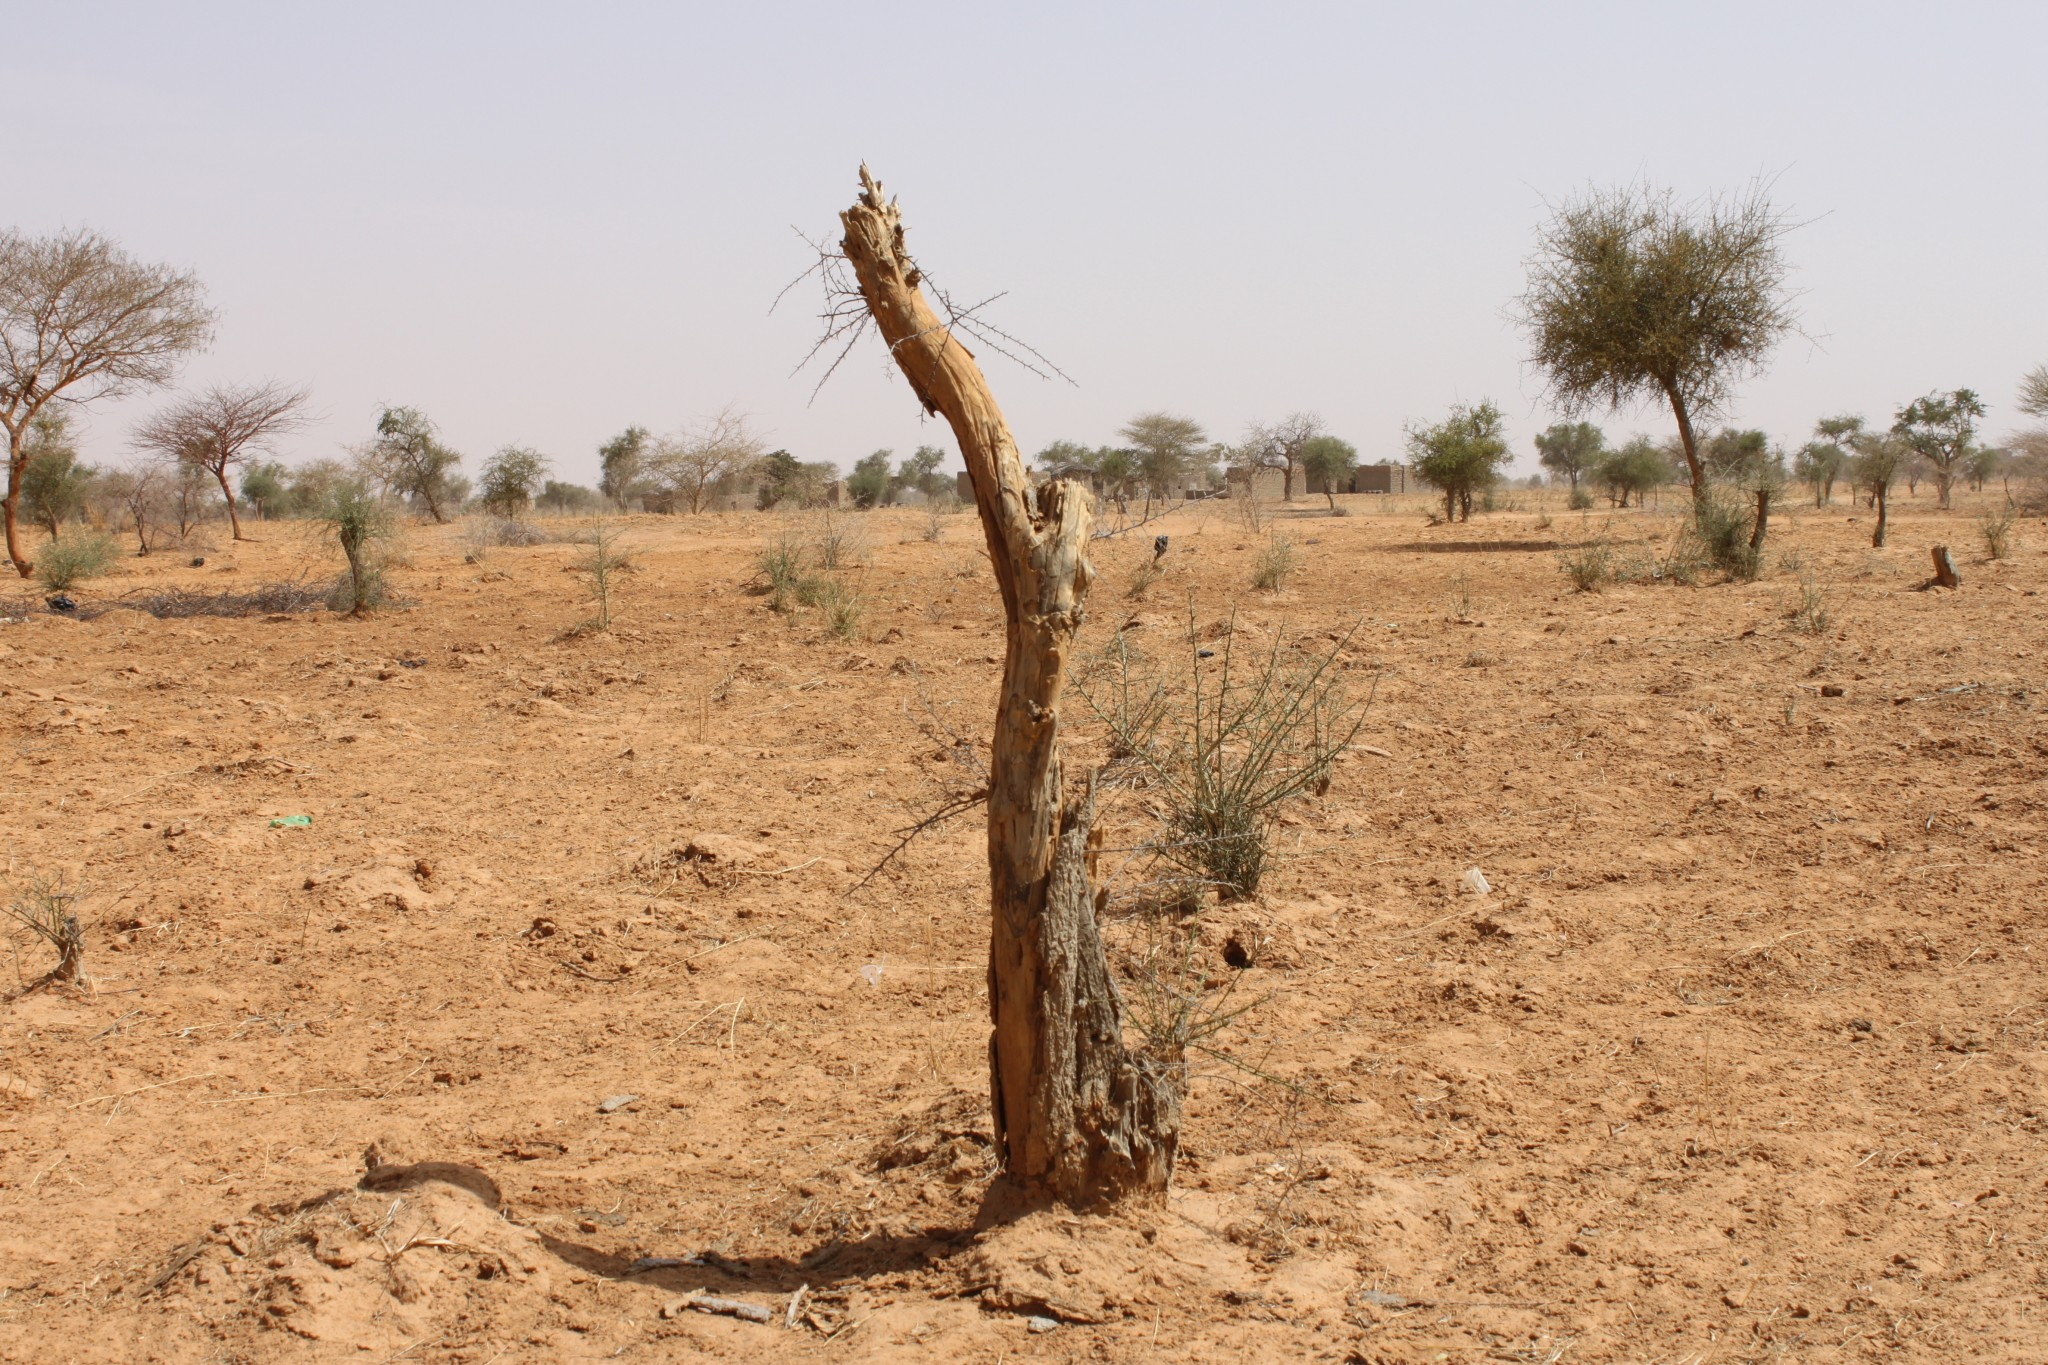 Burkina Faso: a public-private partnership to fight desertification and land degradation